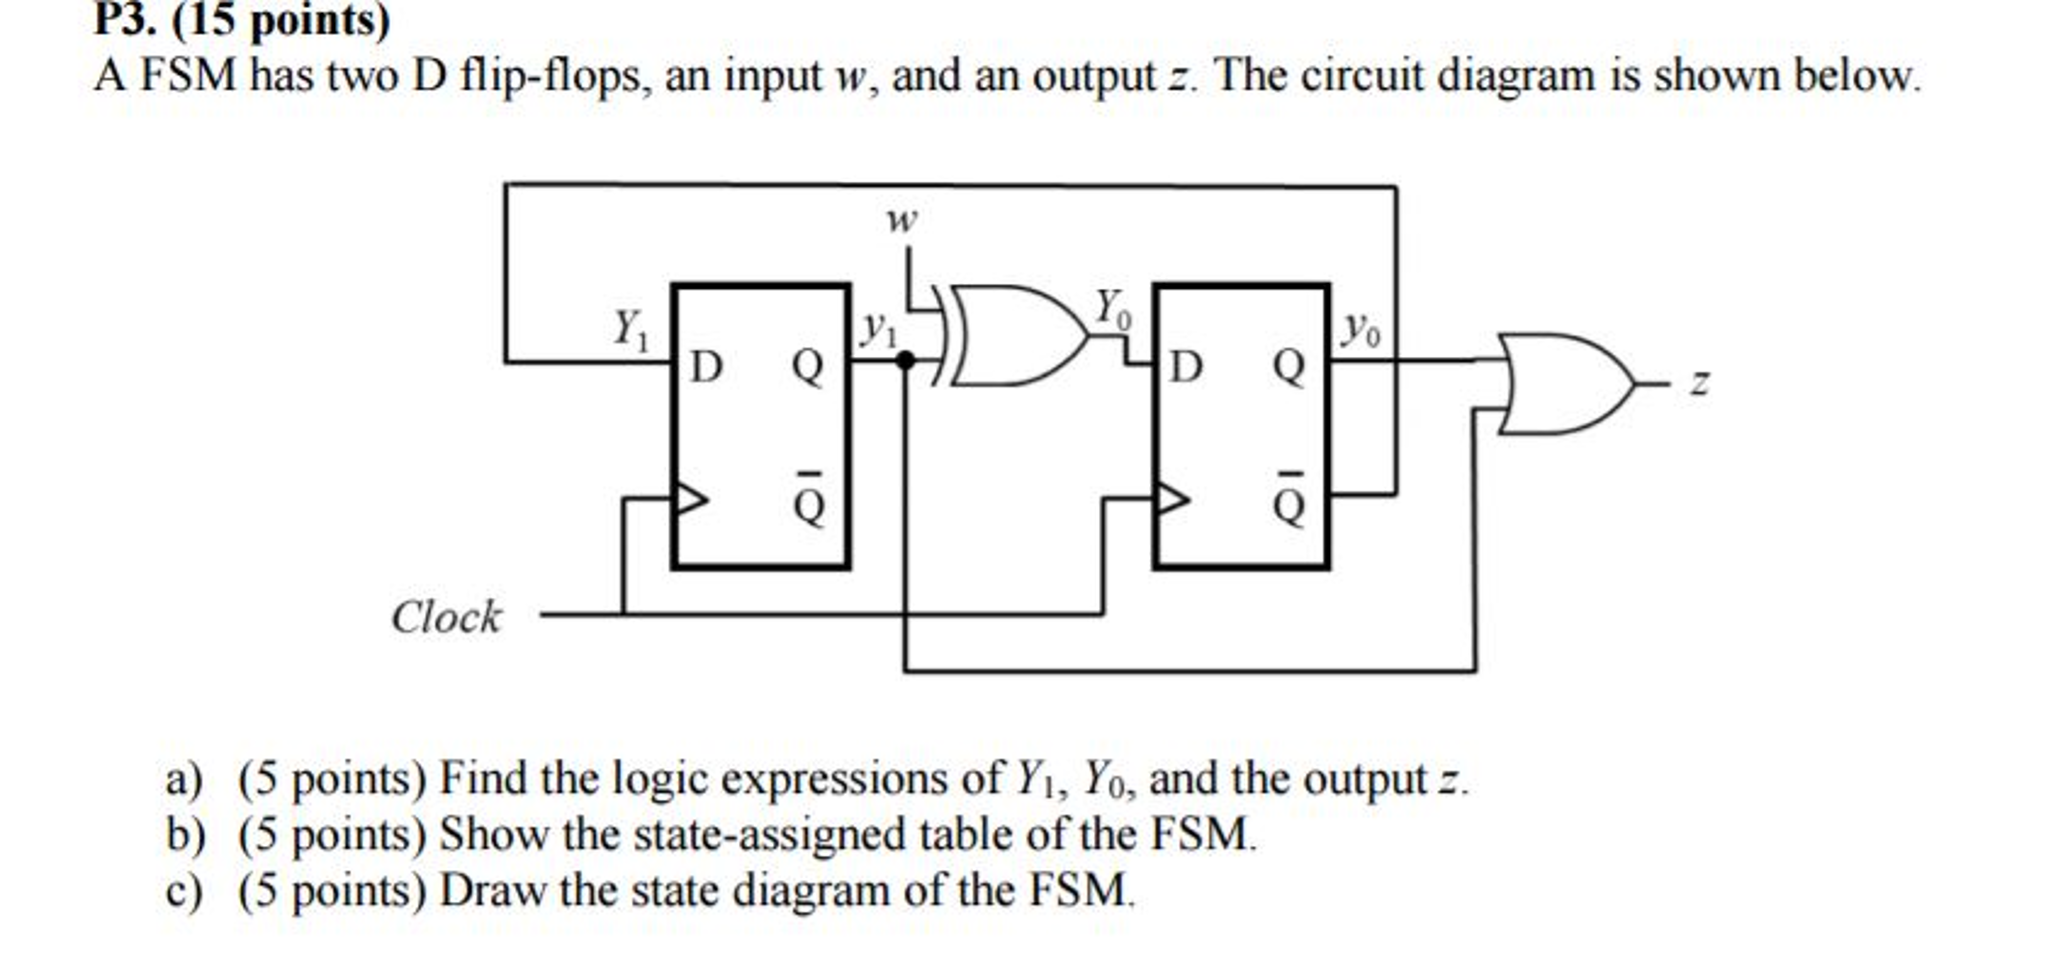 A FSM has two D flip-flops, an input w, and an out